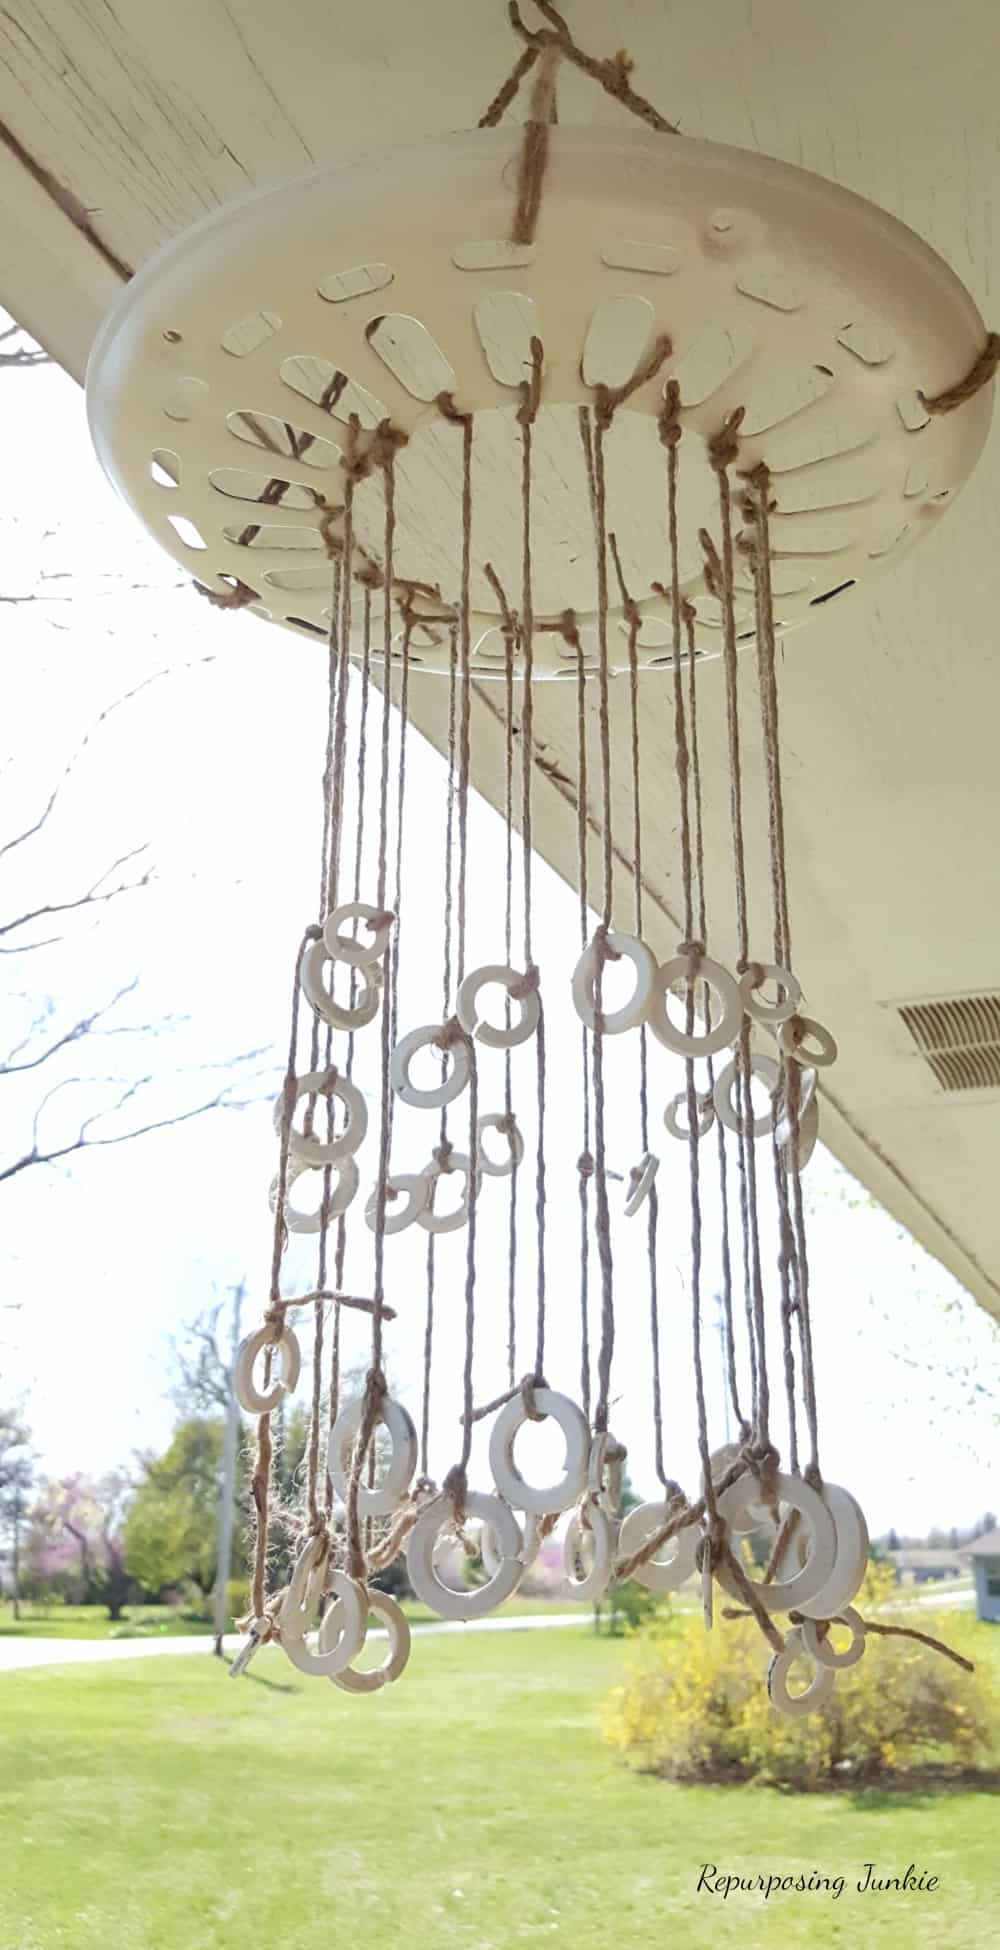 Rustic Wind Chime from Repurposed Materials using Ceiling Fan Cover and Washers and Jute Twine